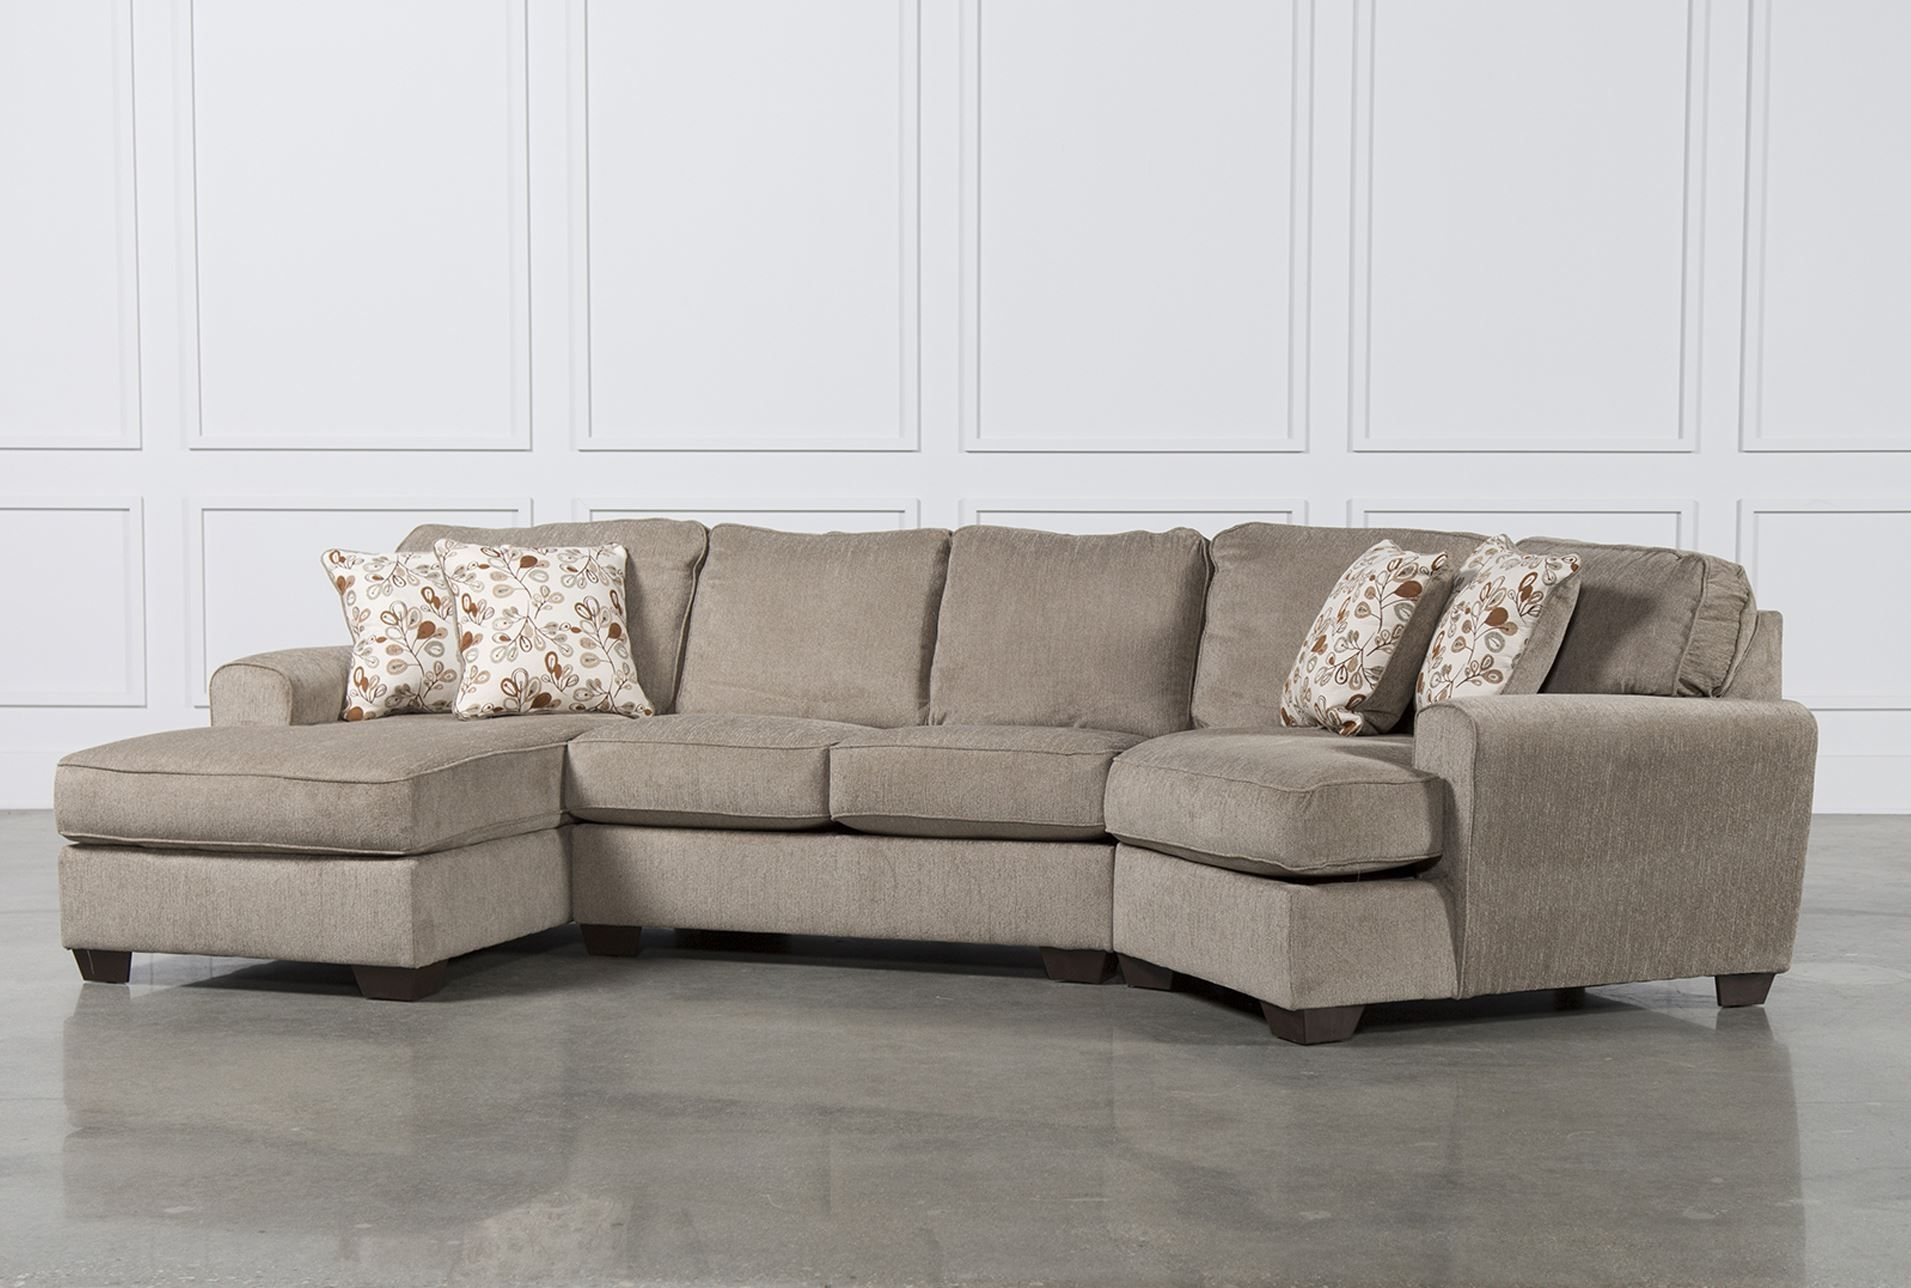 Patola Park 3 Piece Cuddler Sectional W/laf Corner Chaise With Regard To Sierra Down 3 Piece Sectionals With Laf Chaise (View 20 of 30)